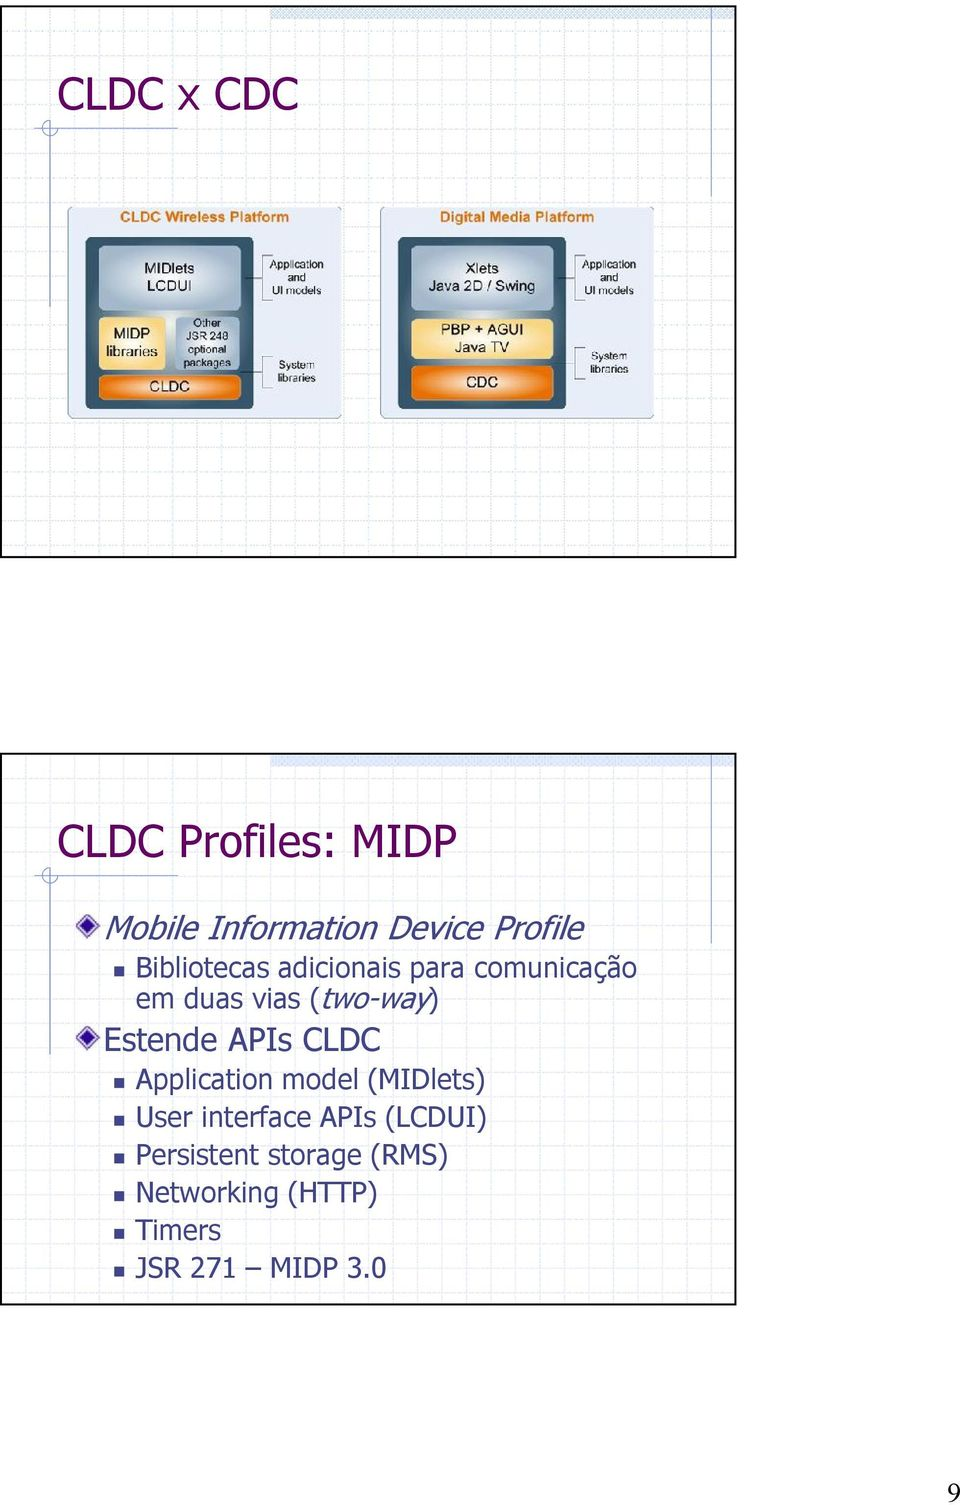 Estende APIs CLDC Application model (MIDlets) User interface APIs